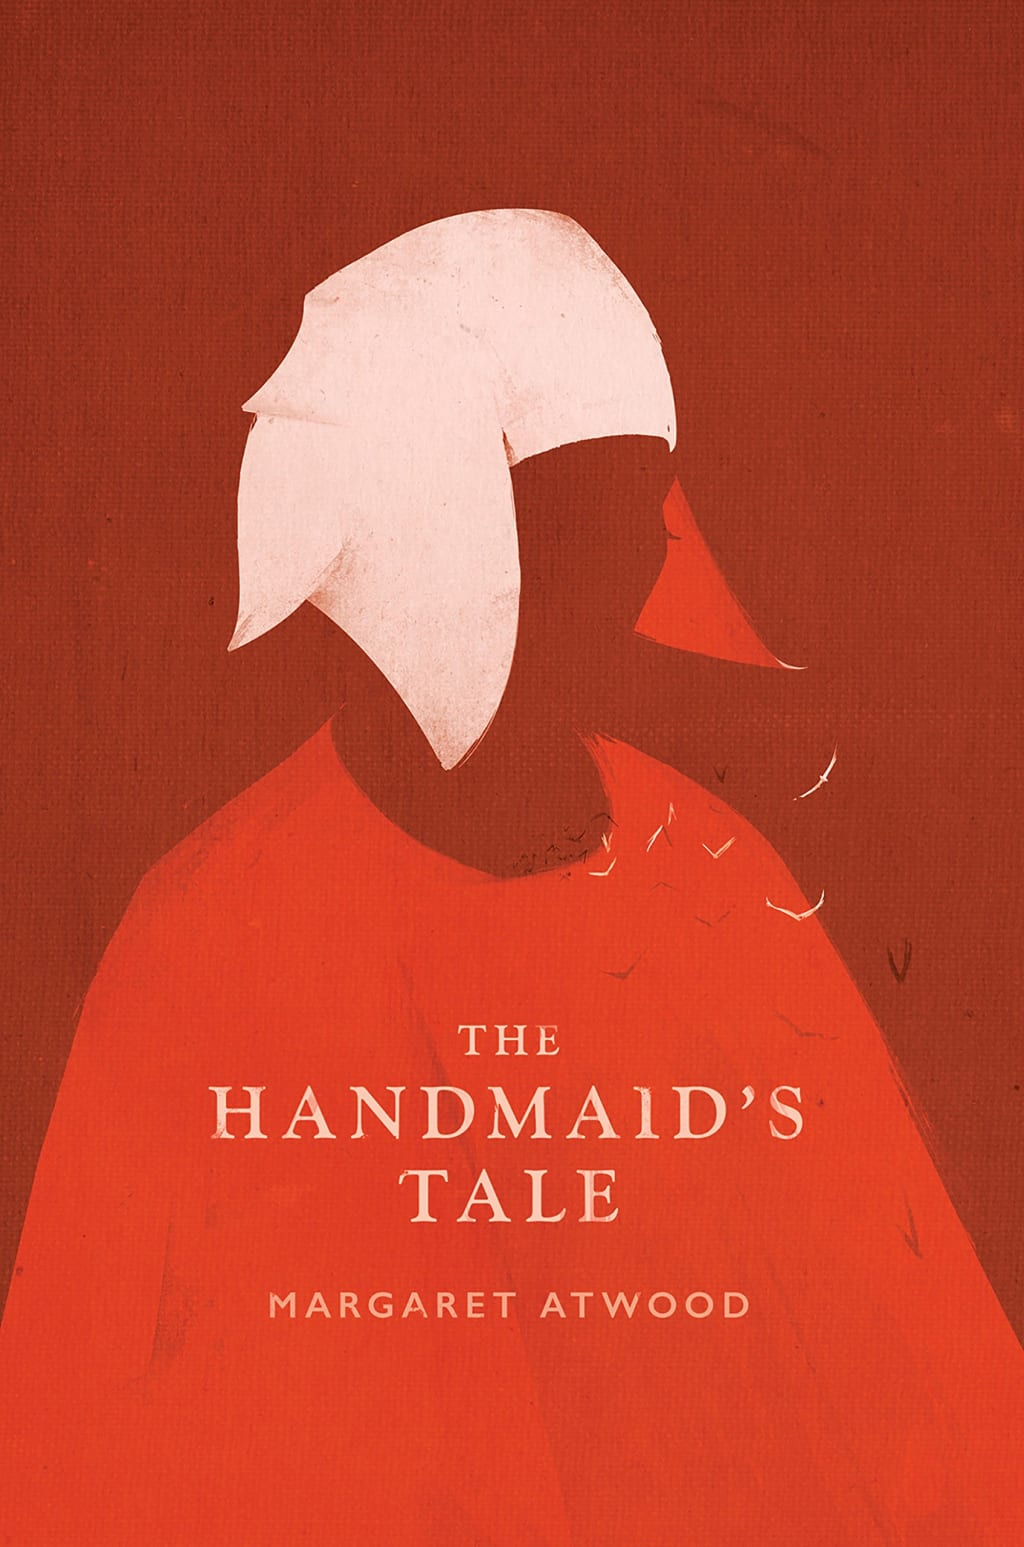 'The Handmaid's Tale' Analysis: Chapters 9-11